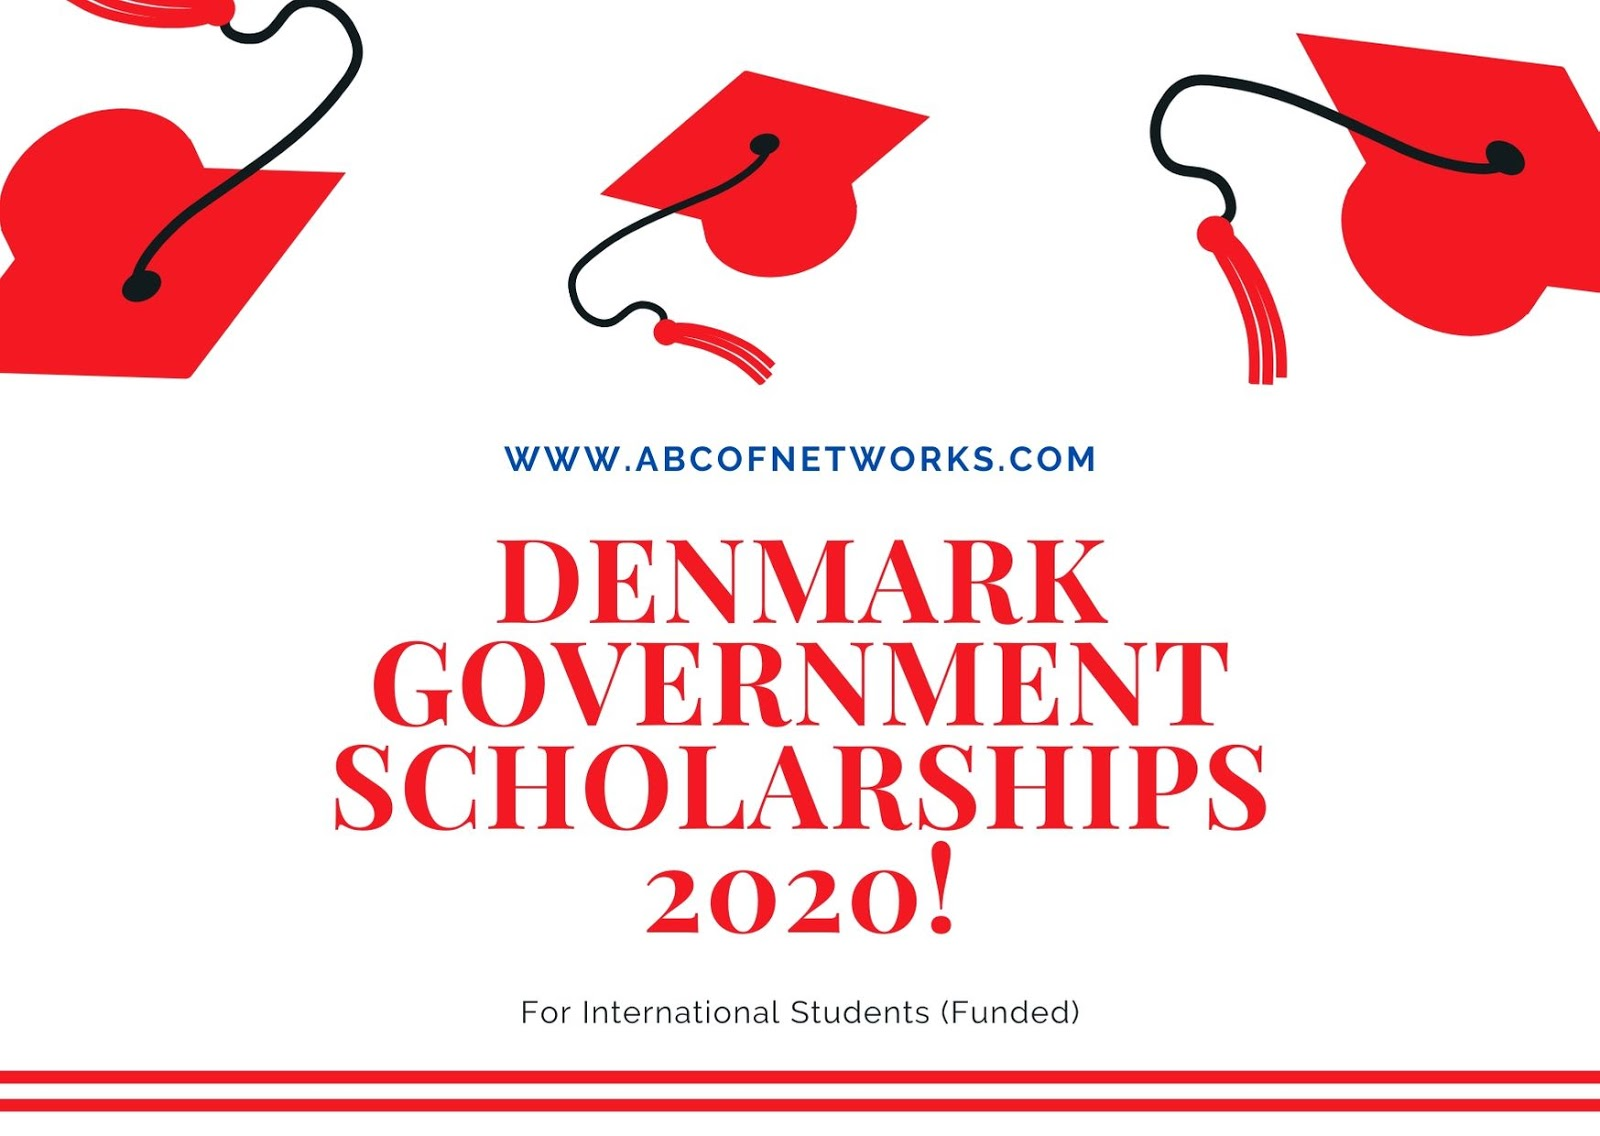 fully funded the Denmark Government Scholarship 2020